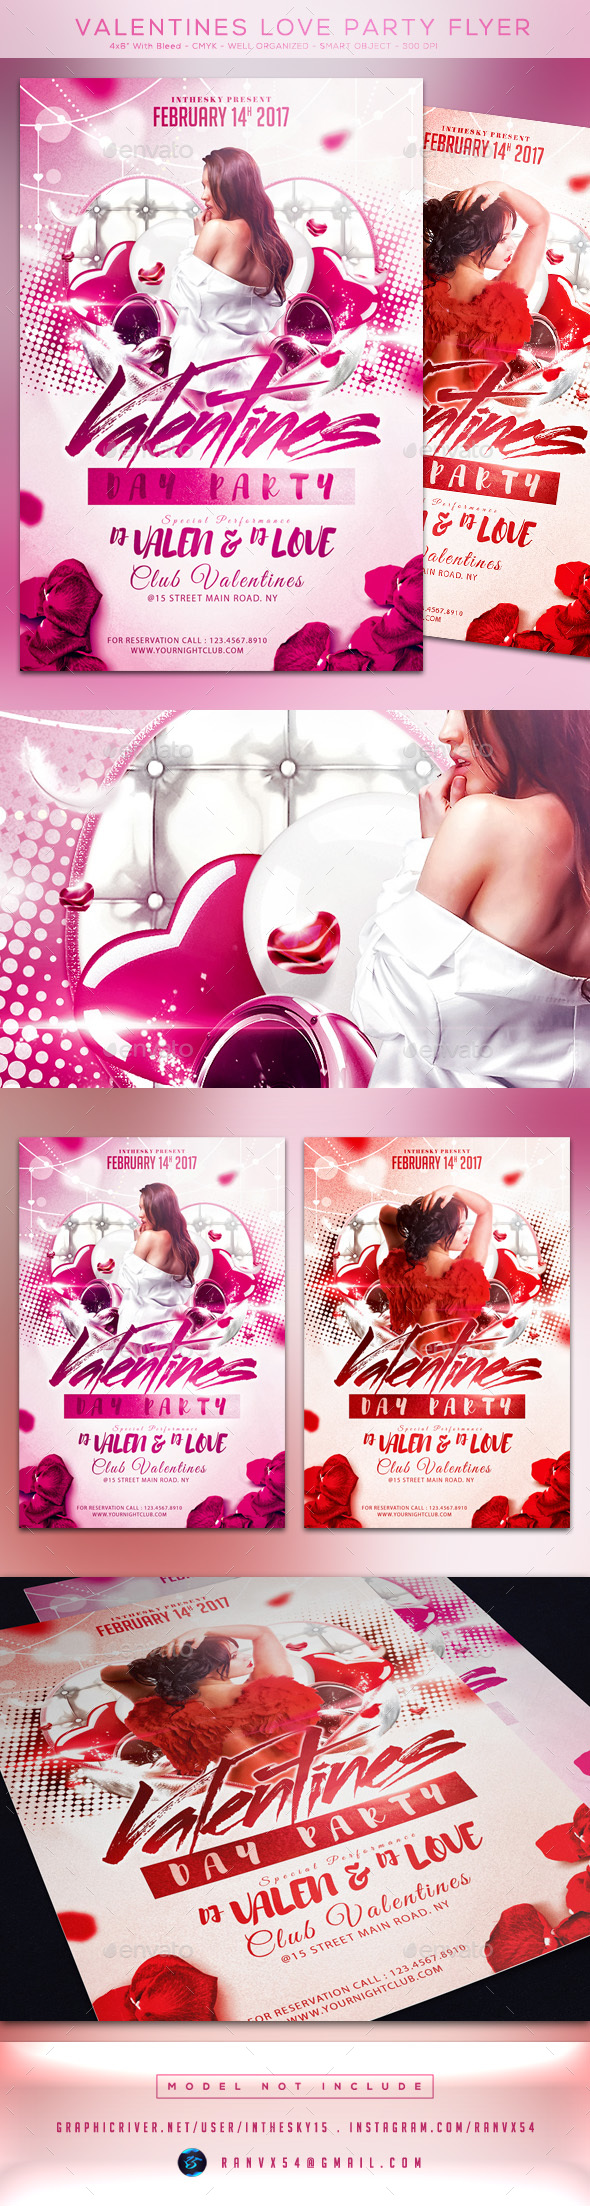 Valentines Love Party Flyer Template - Flyers Print Templates